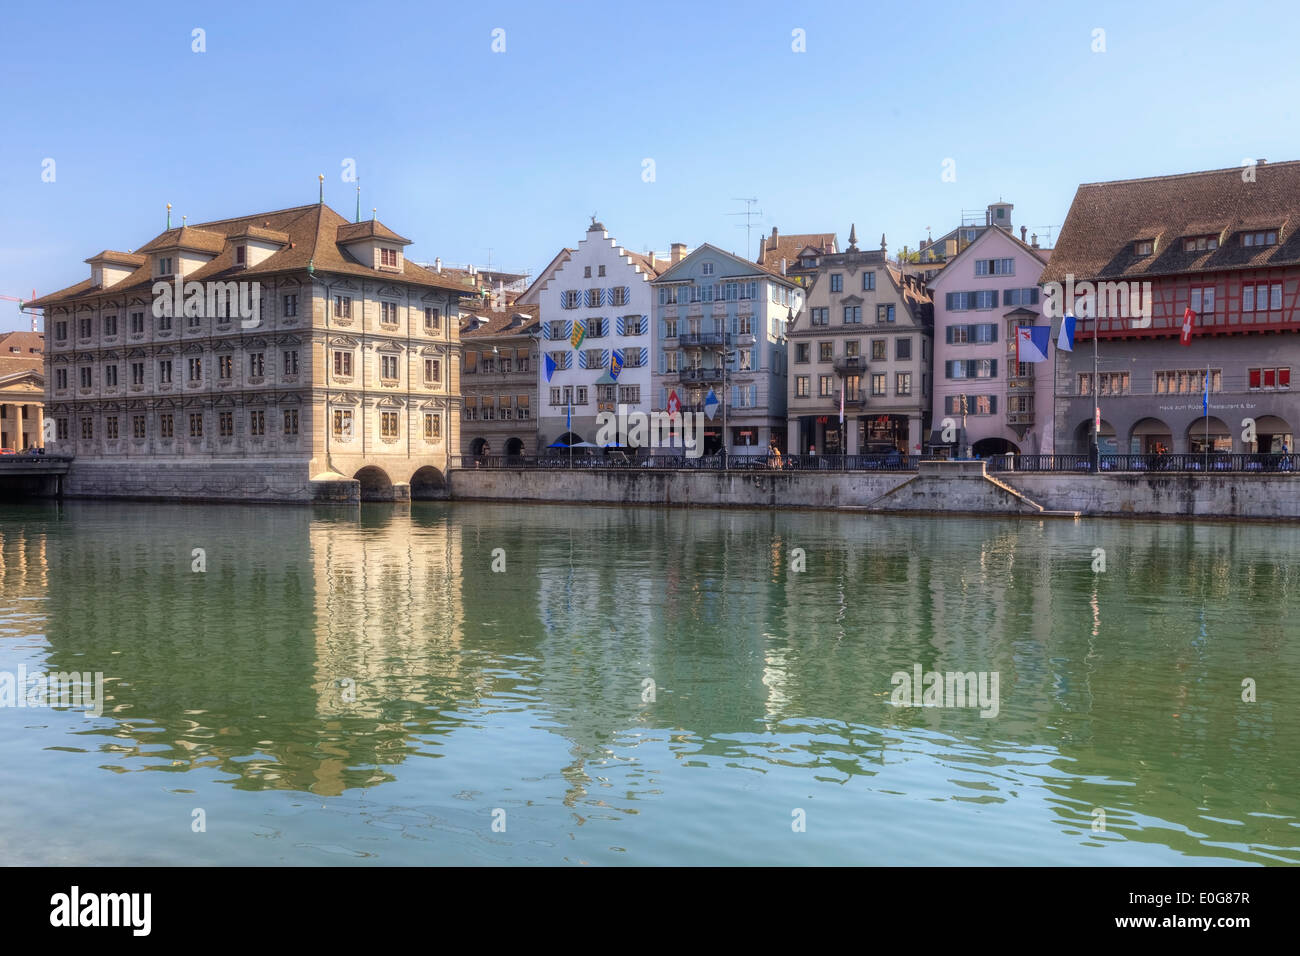 Zurich, town hall, Limmat, Switzerland - Stock Image